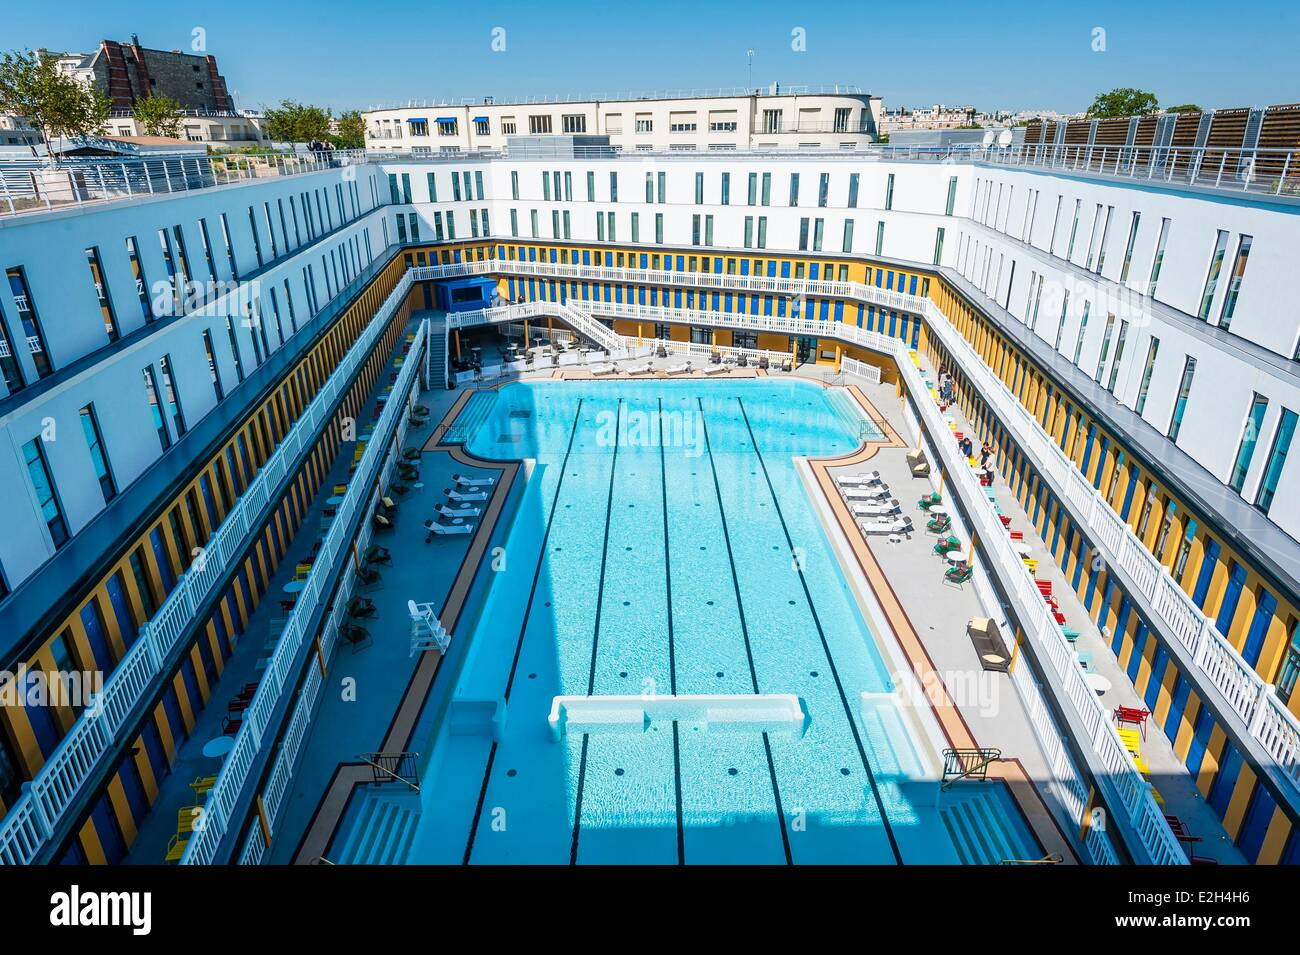 France Paris Hotel Molitor Swimming Pool Opening In May 2014 Listed Stock Photo Royalty Free